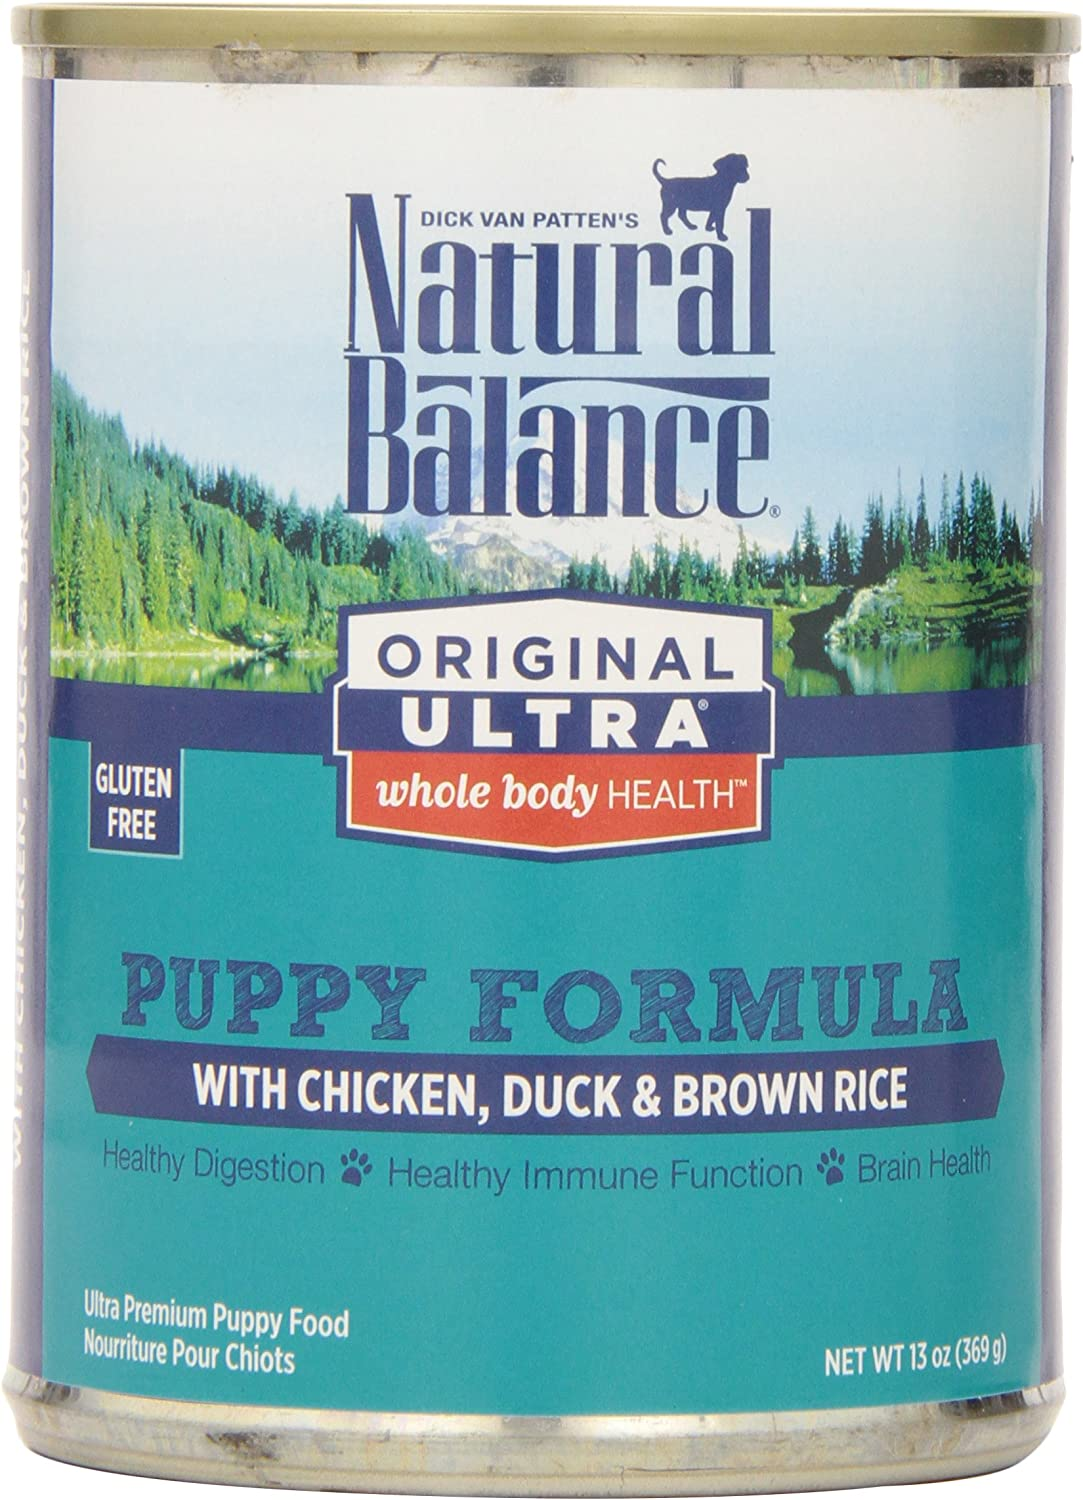 Natural Balance Original Ultra Whole Body Health Chicken Duck Brown Rice Canned Puppy Dog Food